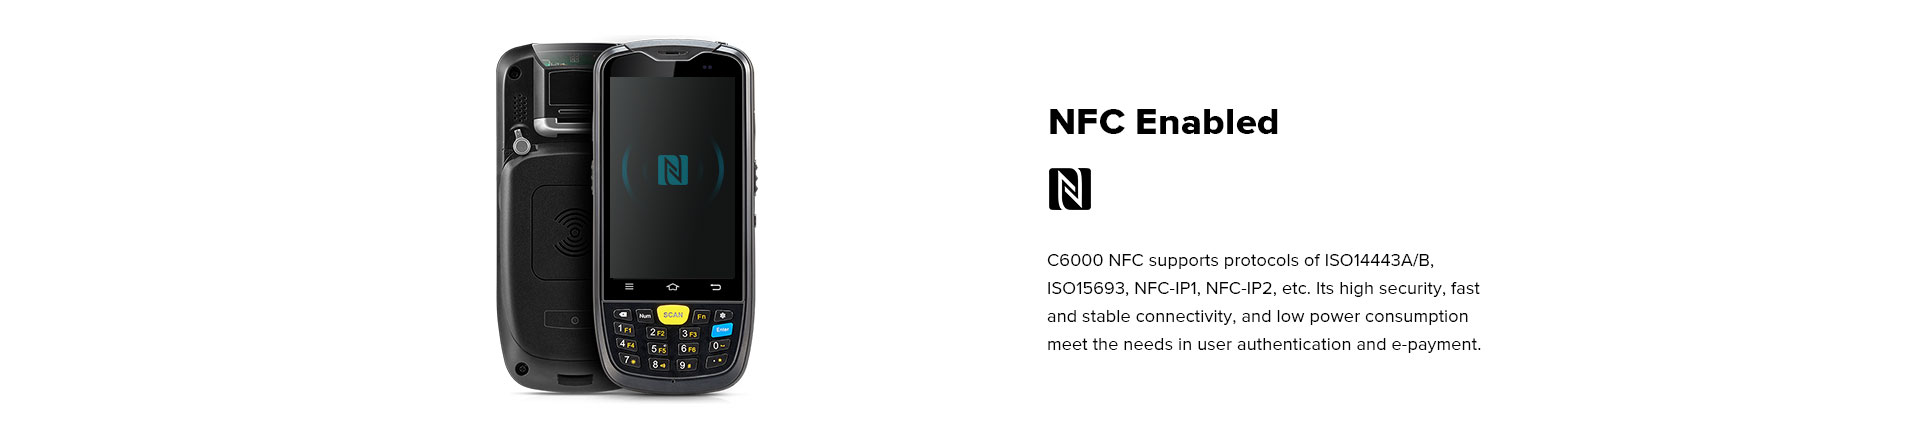 C6000 Rugged Handheld Computer Android - RFID/NFC reader